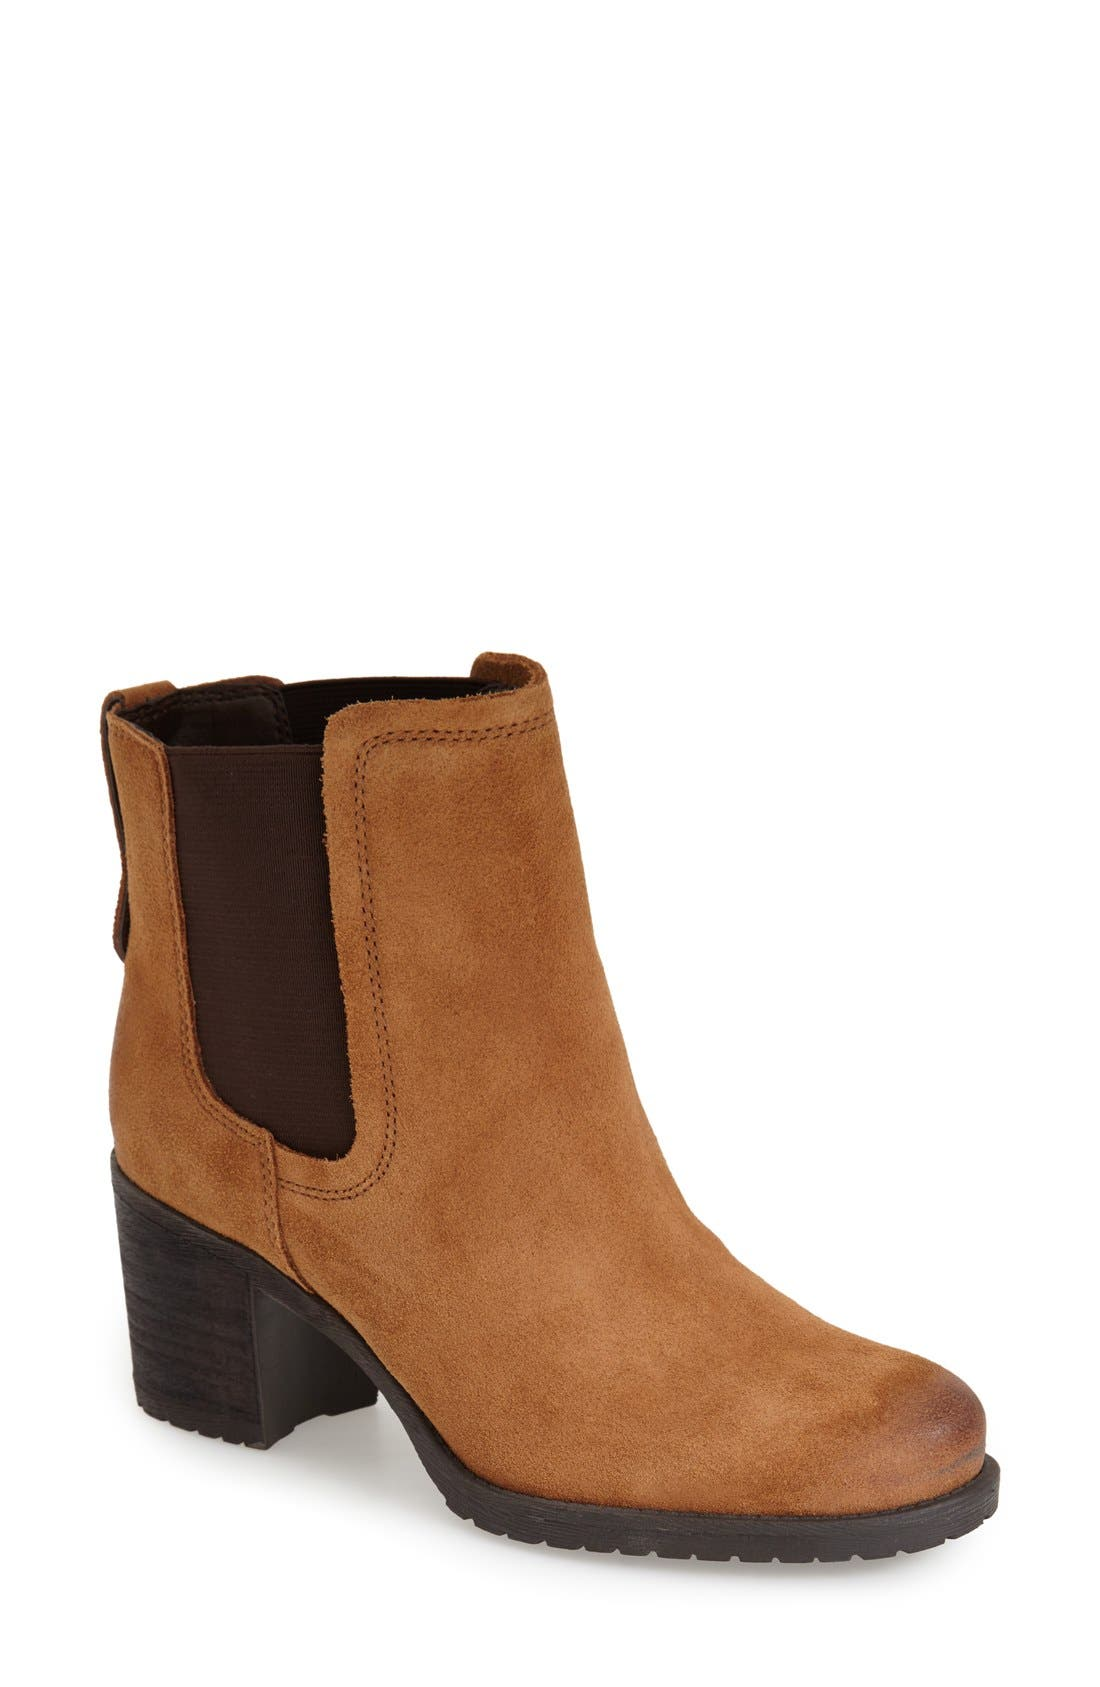 Alternate Image 1 Selected - Sam Edelman 'Hanley' Suede Chelsea Boot (Women)